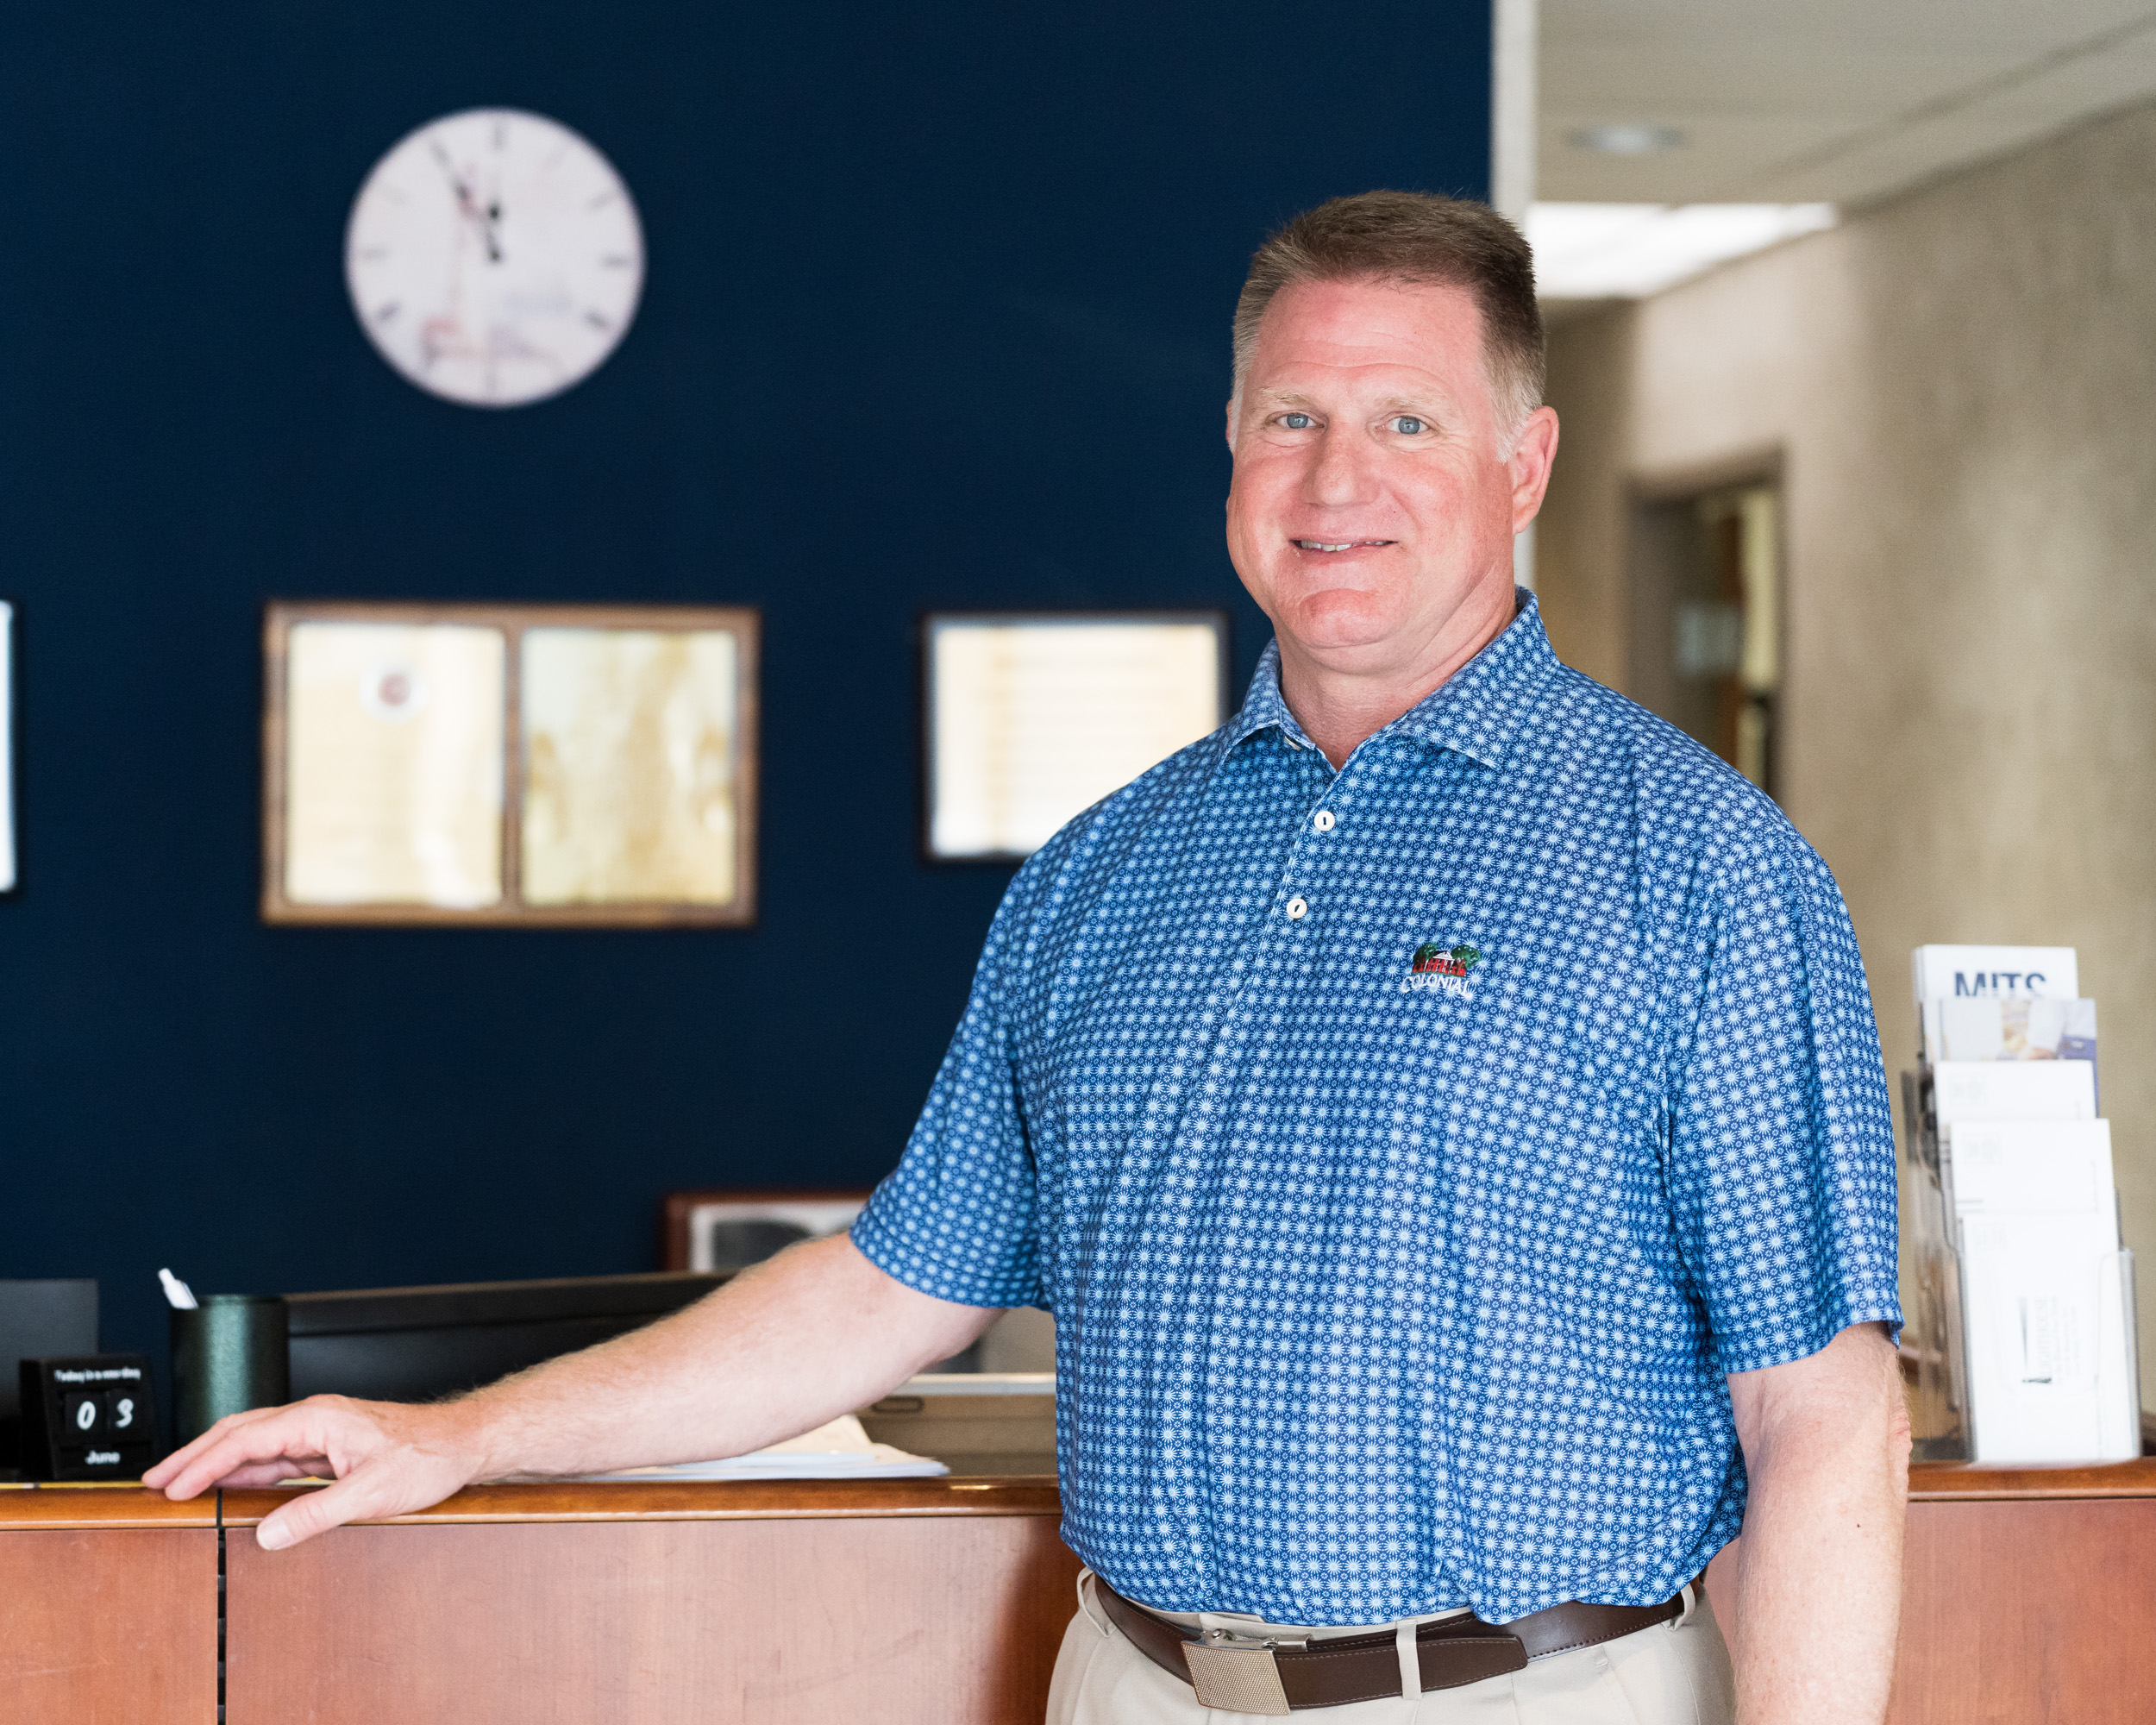 A man with a blue shirt standing in front of a desk